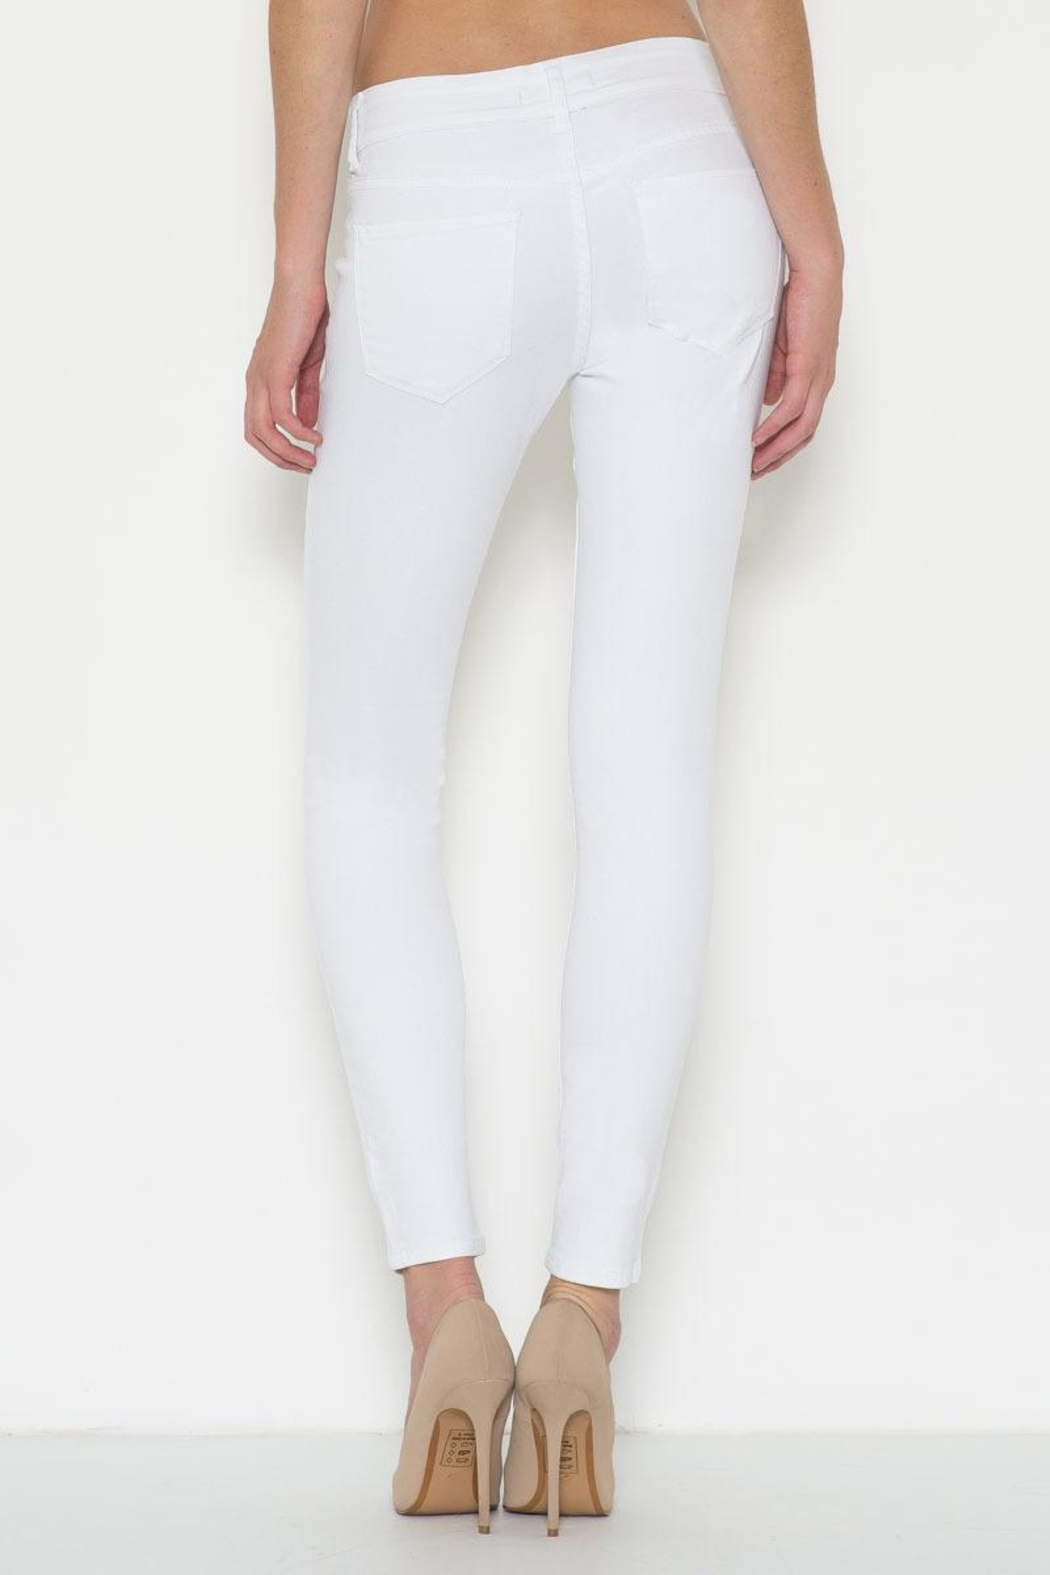 Cello Jeans White Distressed Jeans - Side Cropped Image